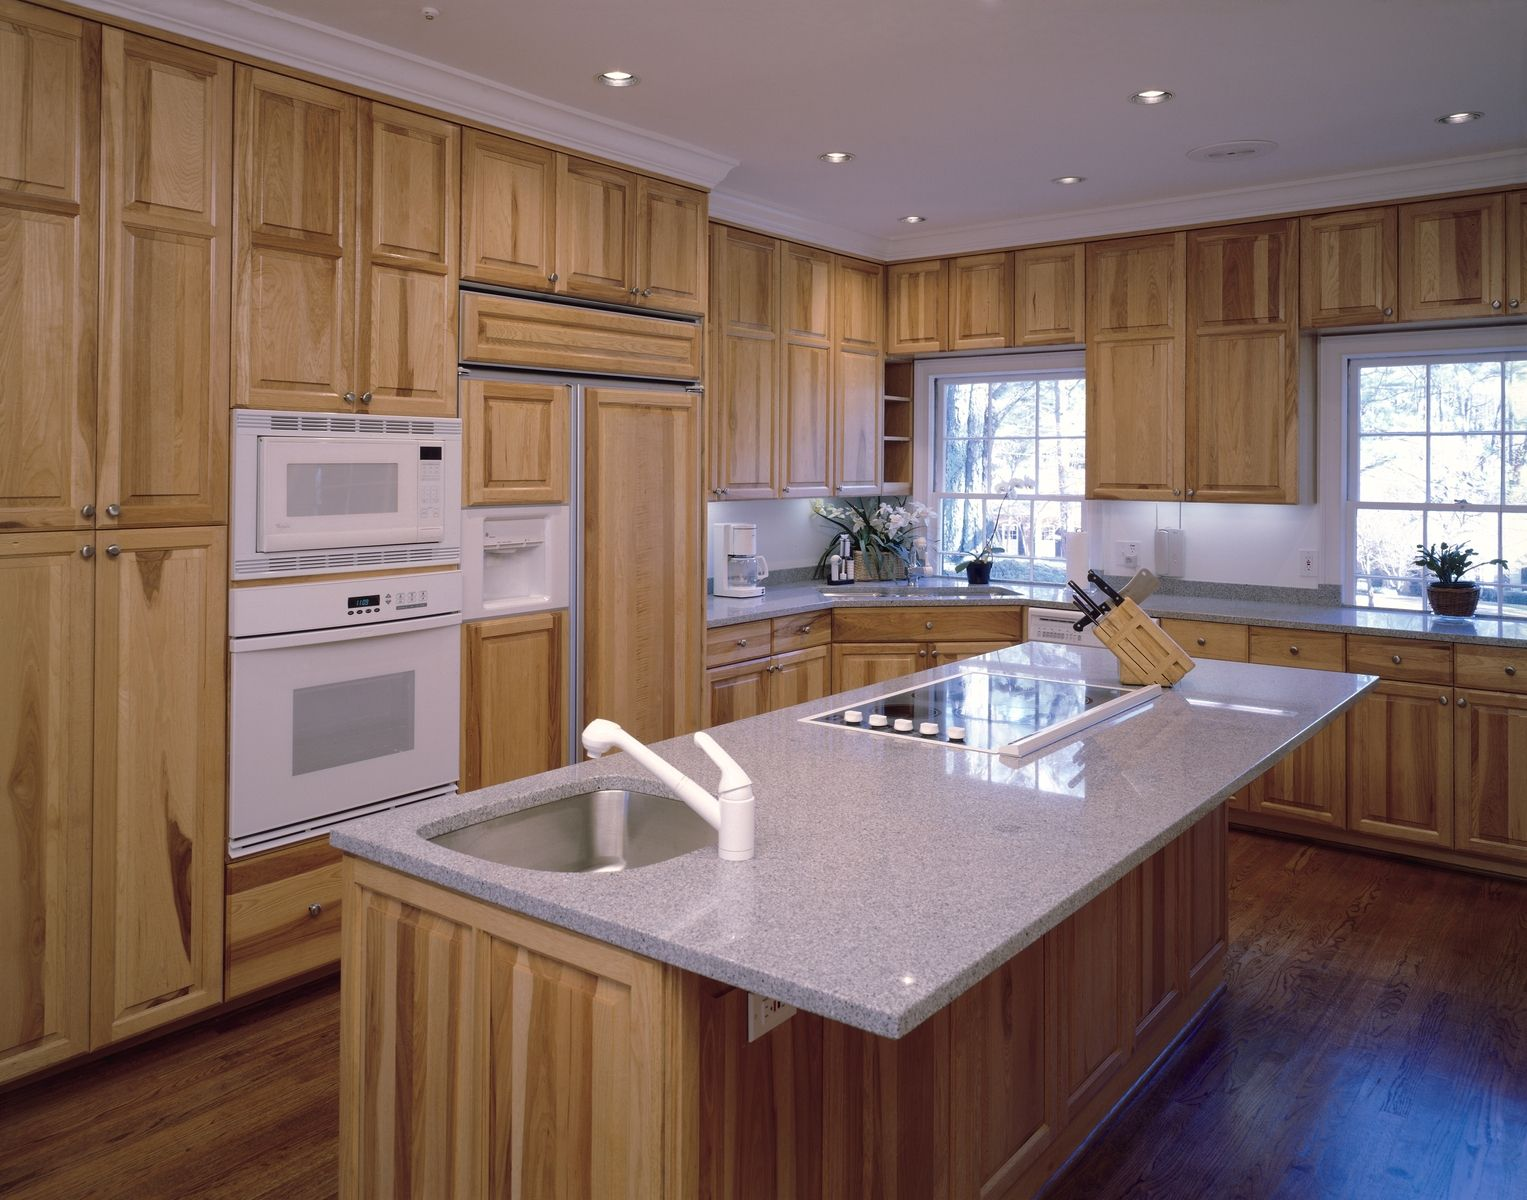 Hickory Kitchen Cabinets Log Home Living Pinterest Hickory Kitchen Cabinets Hickory